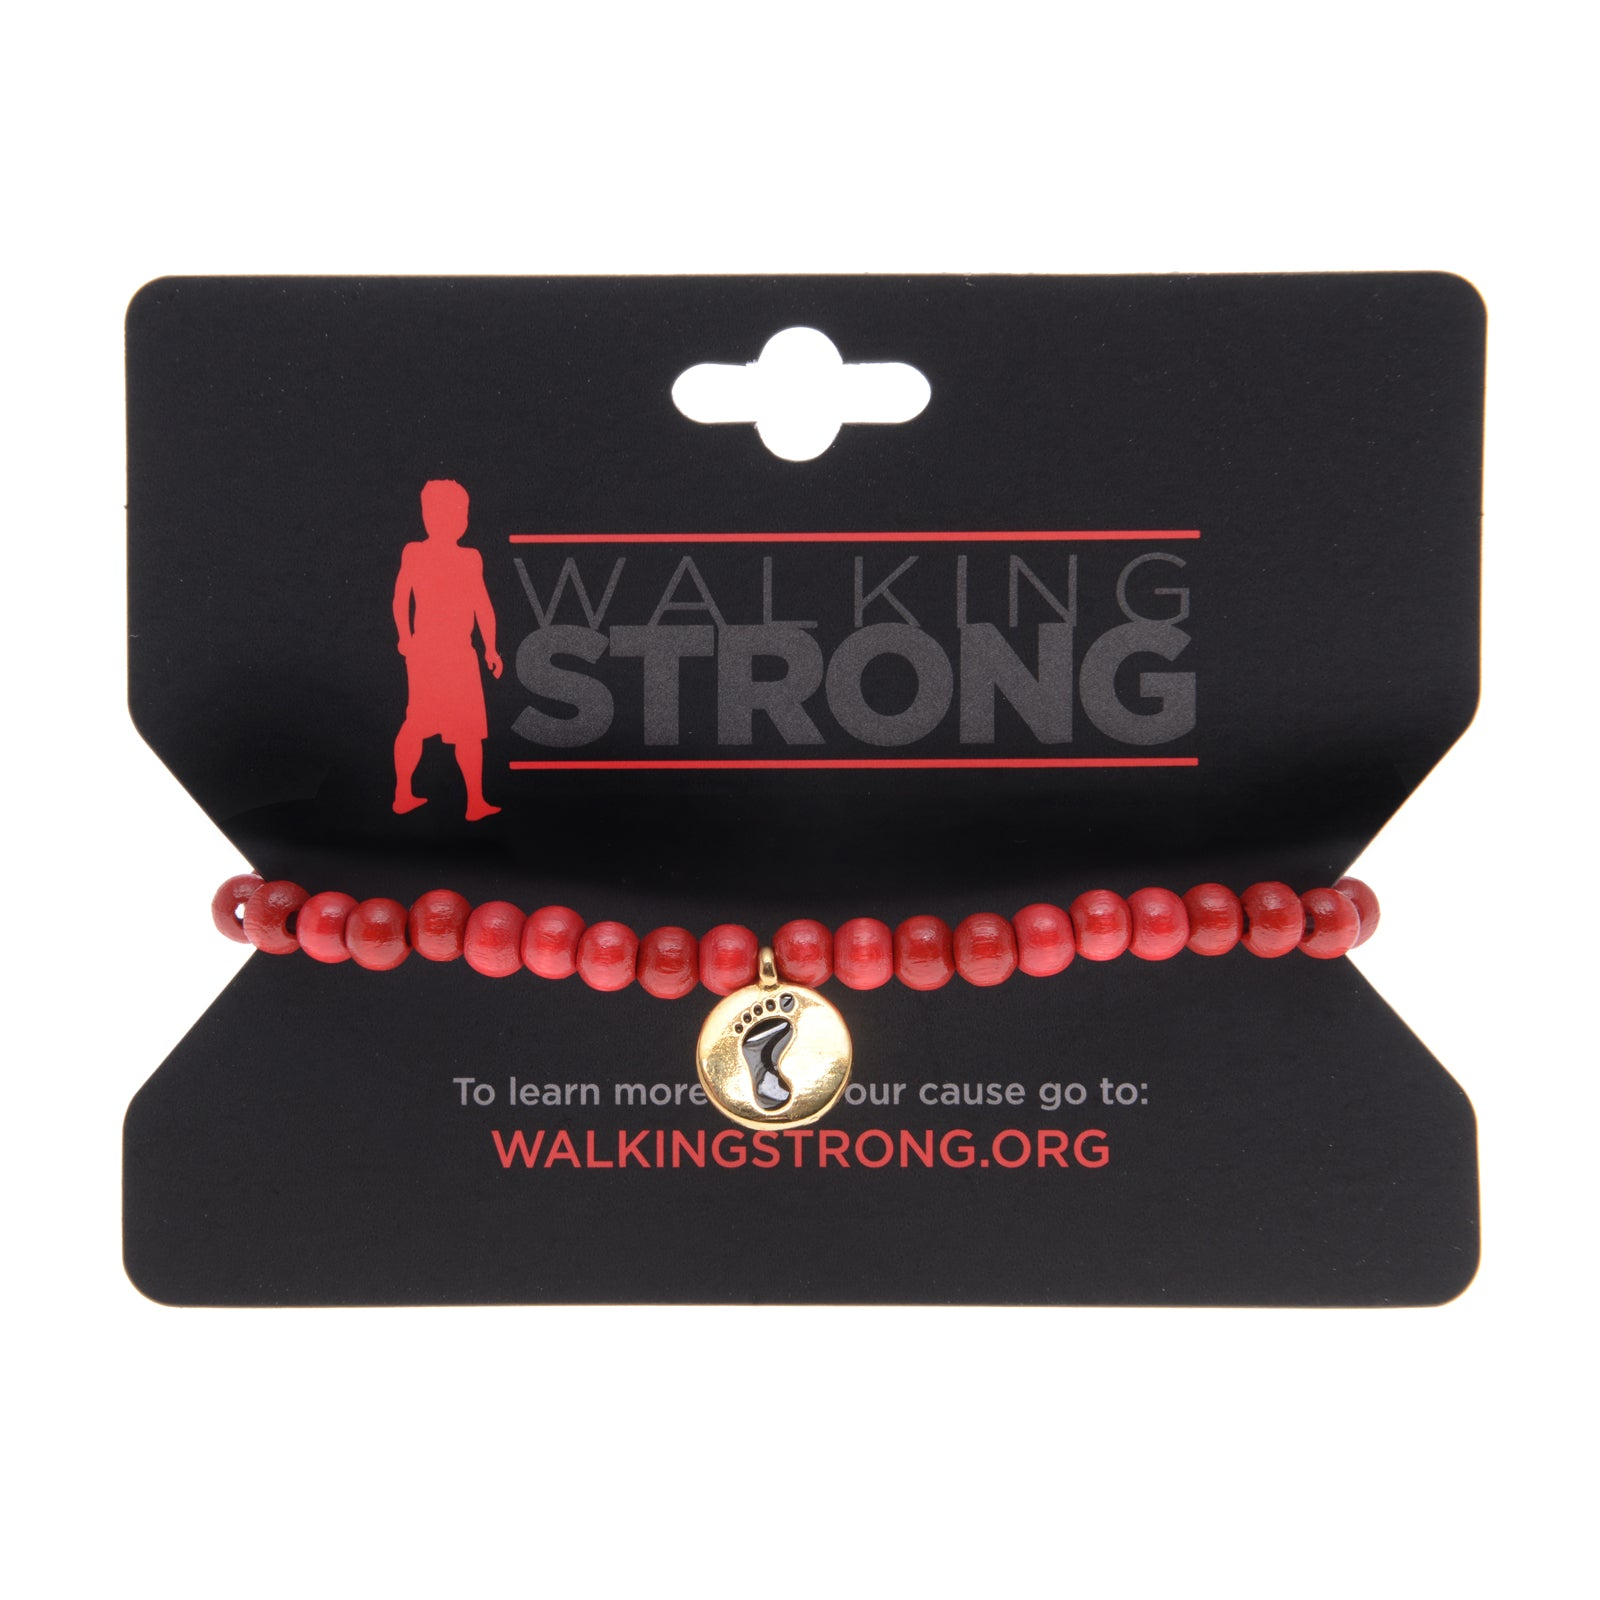 Walking Strong Bracelet - Small Red Wood Beads - Whitney Howard Designs